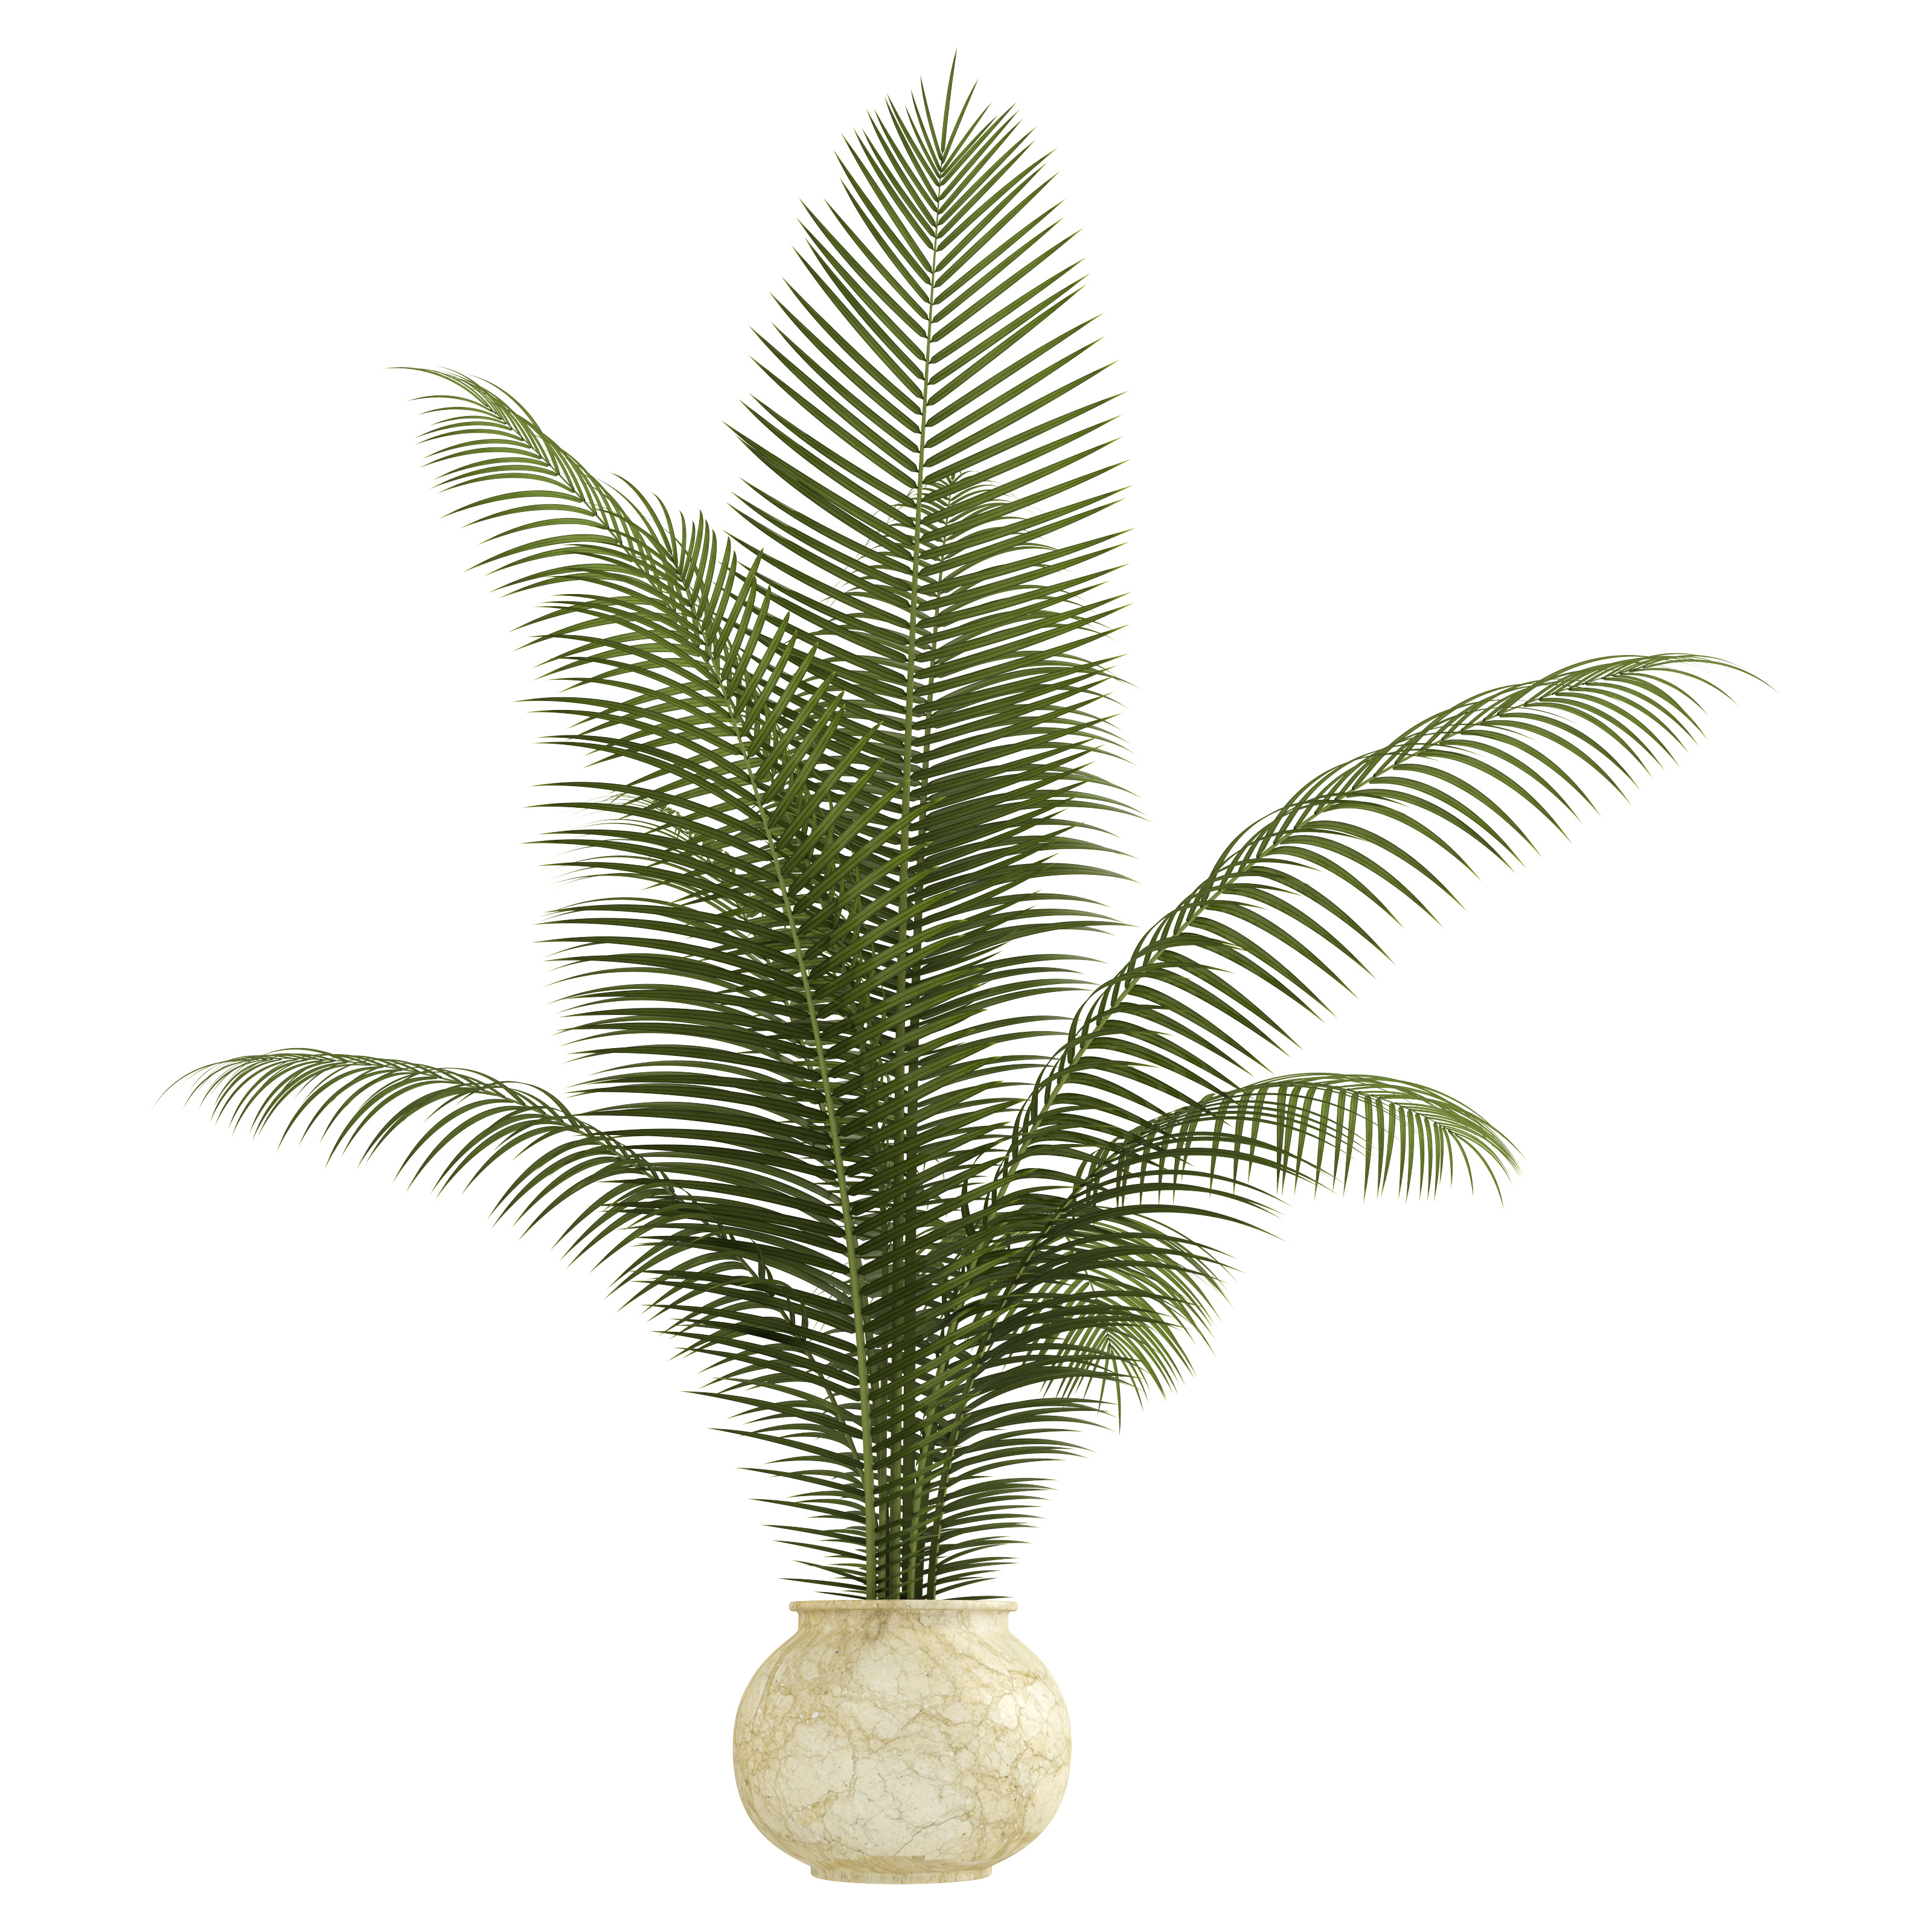 11 House Plants Safe For Cats and Dogs - The Organic Goat Lady